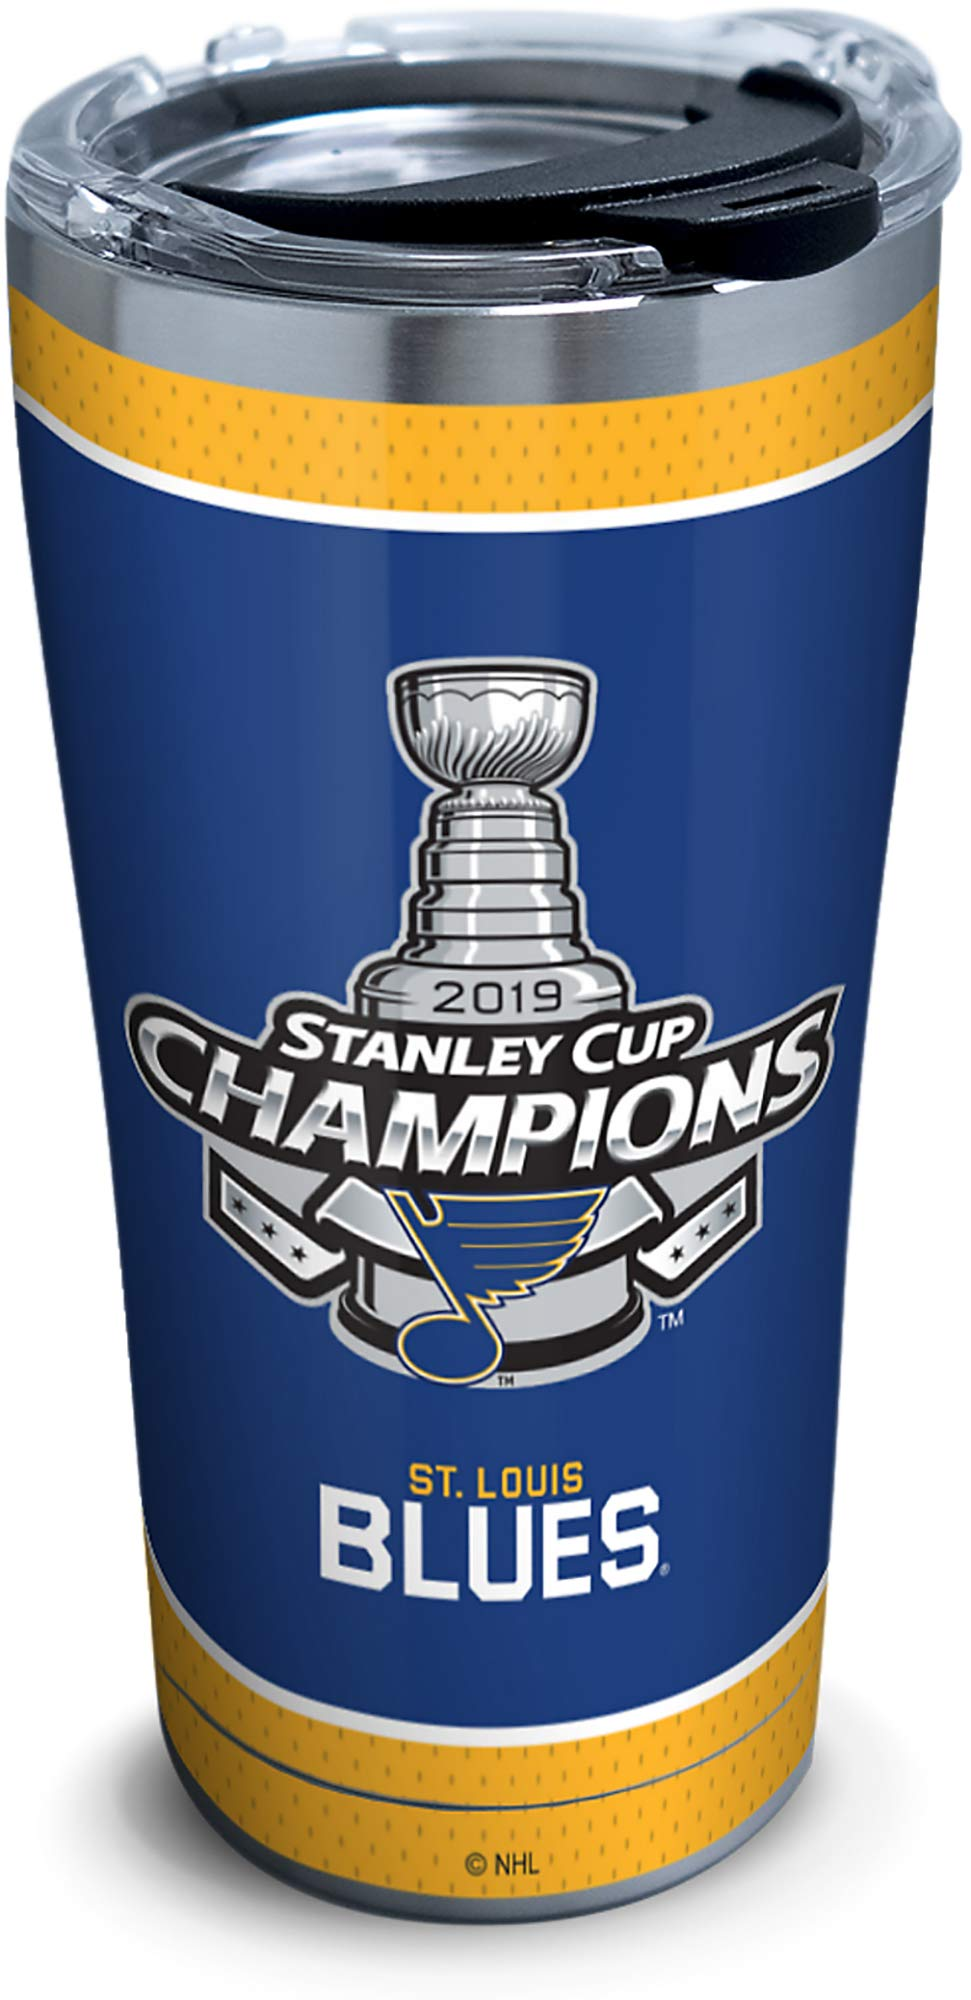 Tervis NHL St. Louis Blues 2019 Stanley Cup Champions Stainless Steel Insulated Tumbler with Clear & Black Hammer Lid, 20 oz, Silver - 1336027